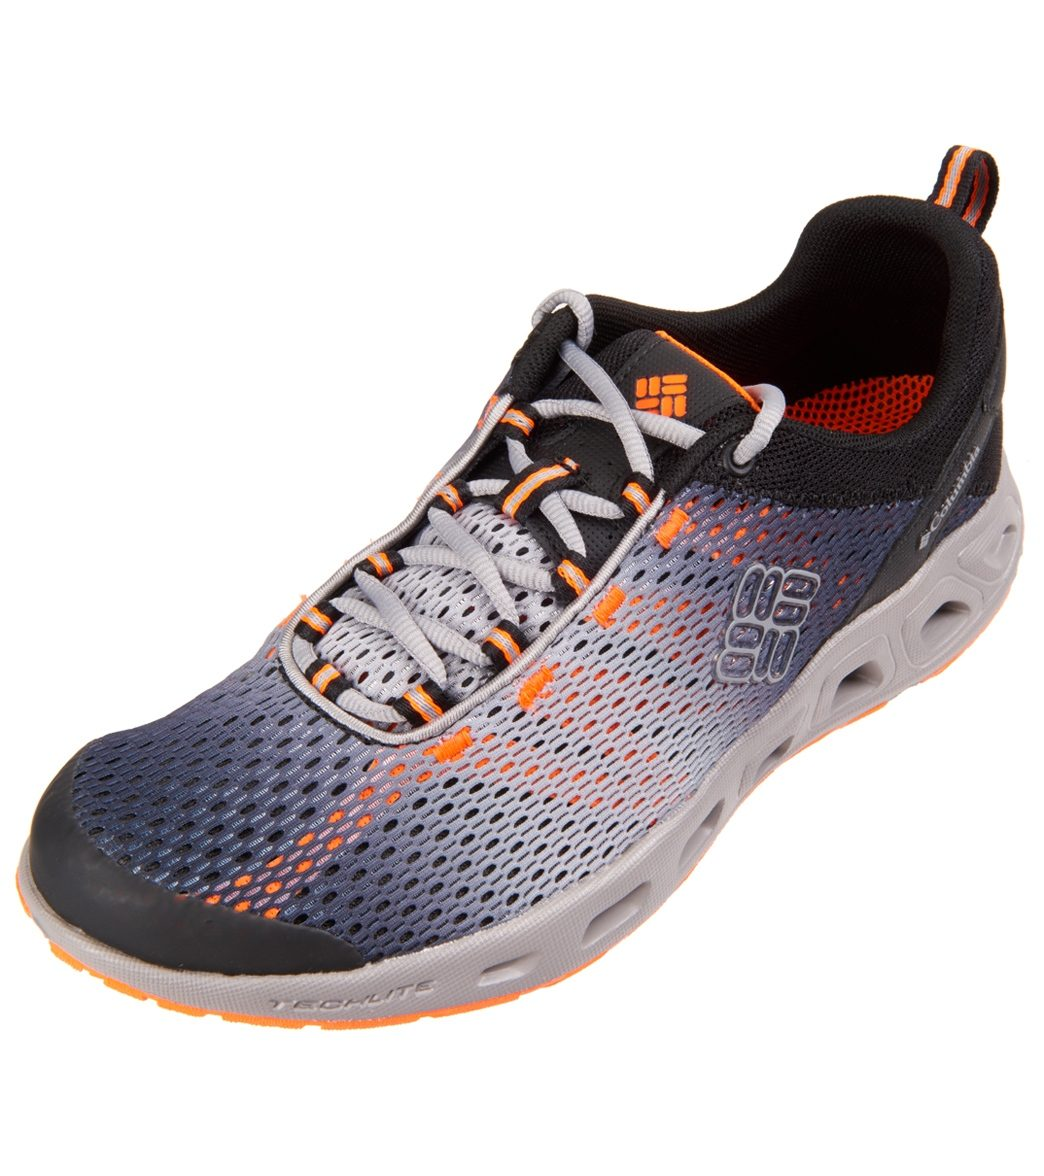 826fa1a77a16 Columbia Men s Drainmaker III Water Shoe 2 at SwimOutlet.com ...